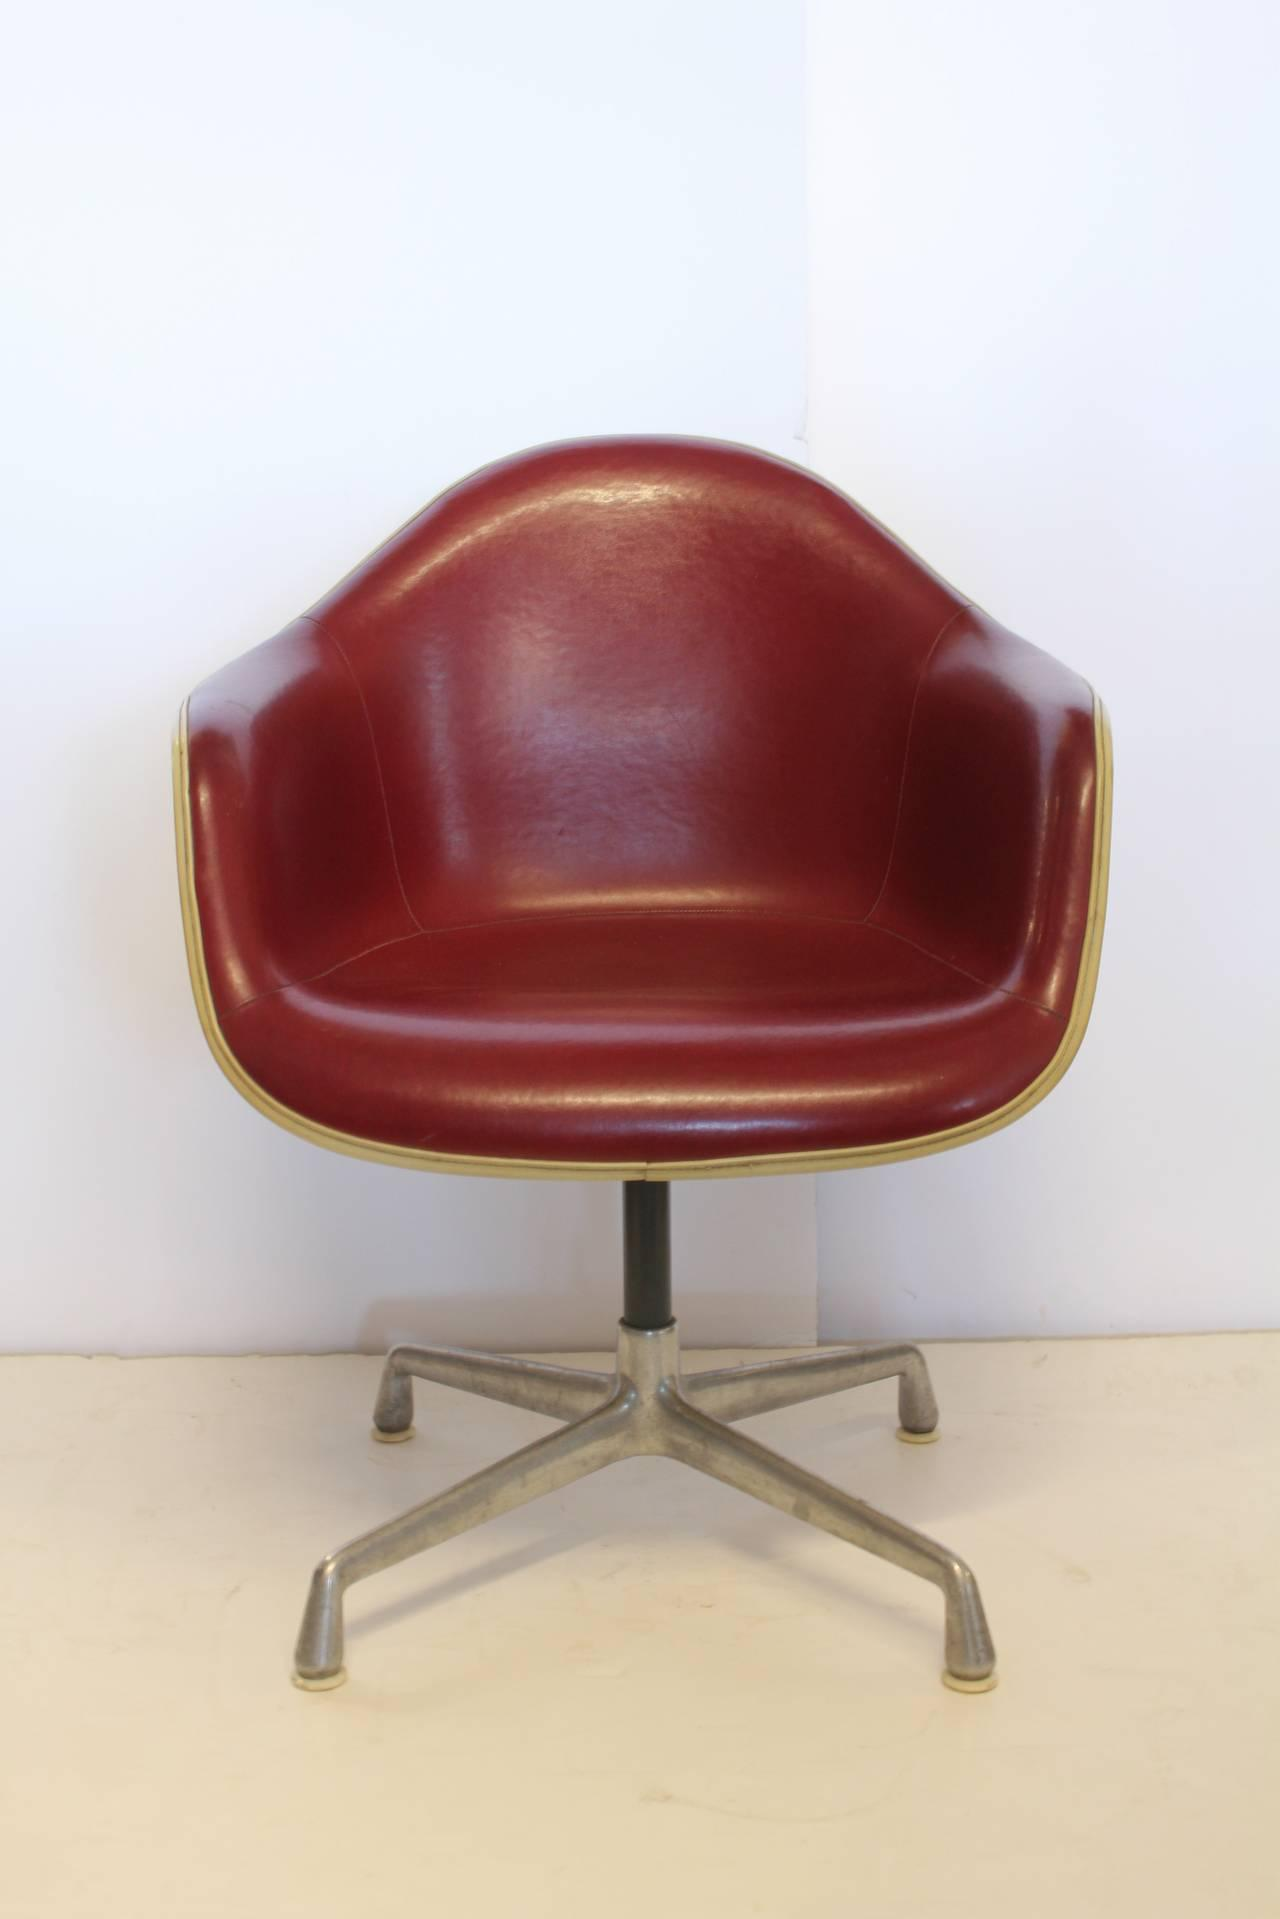 Charles Eames For Herman Miller Swivel Bucket Chair   Image 2 Of 3